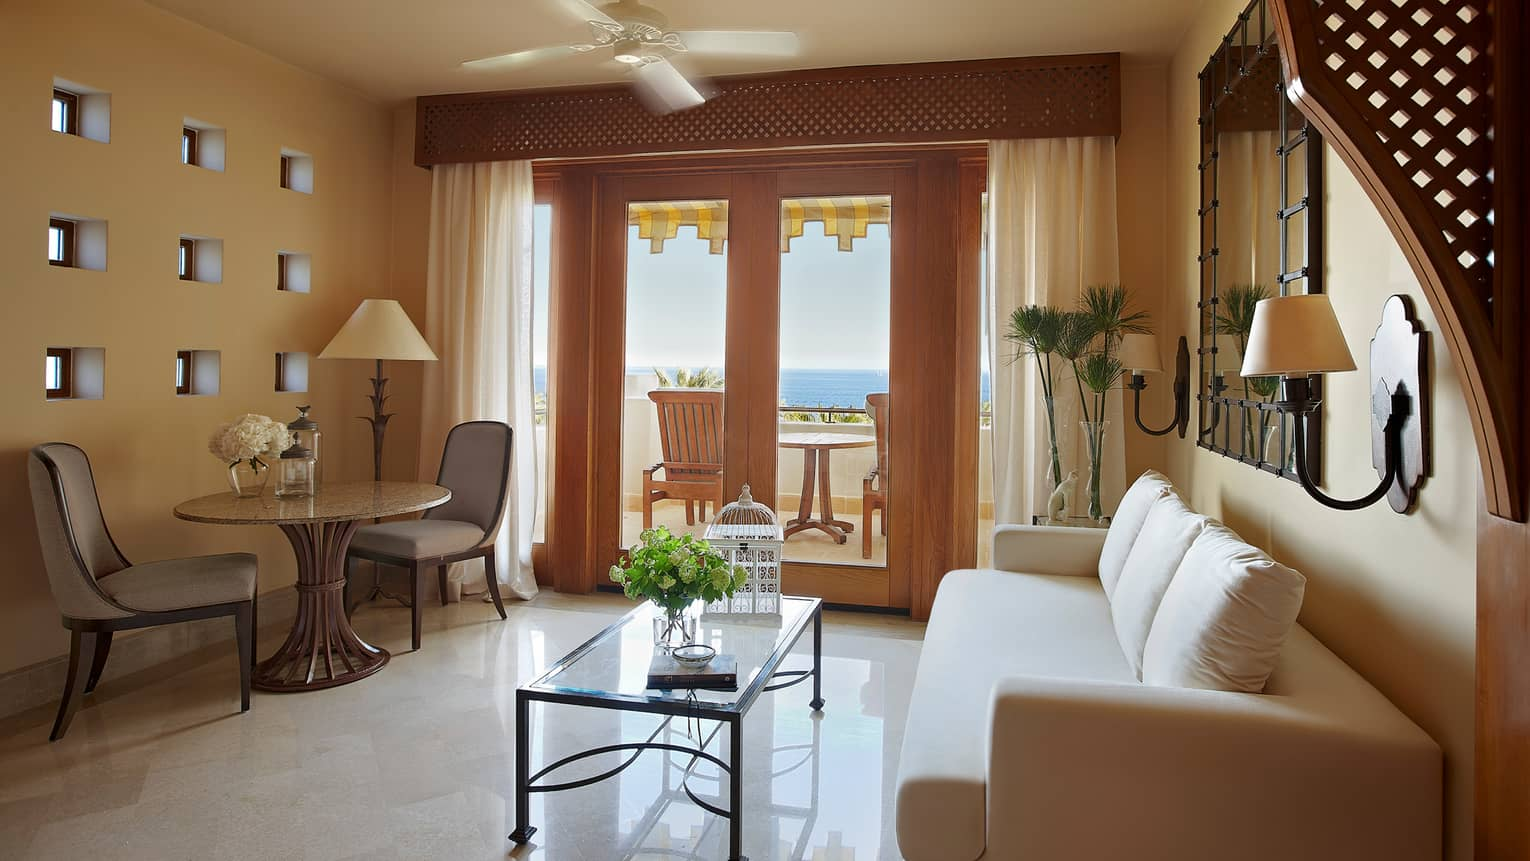 Premier Sea-View Room white sofa, glass coffee table, cafe-style dining table by balcony doors